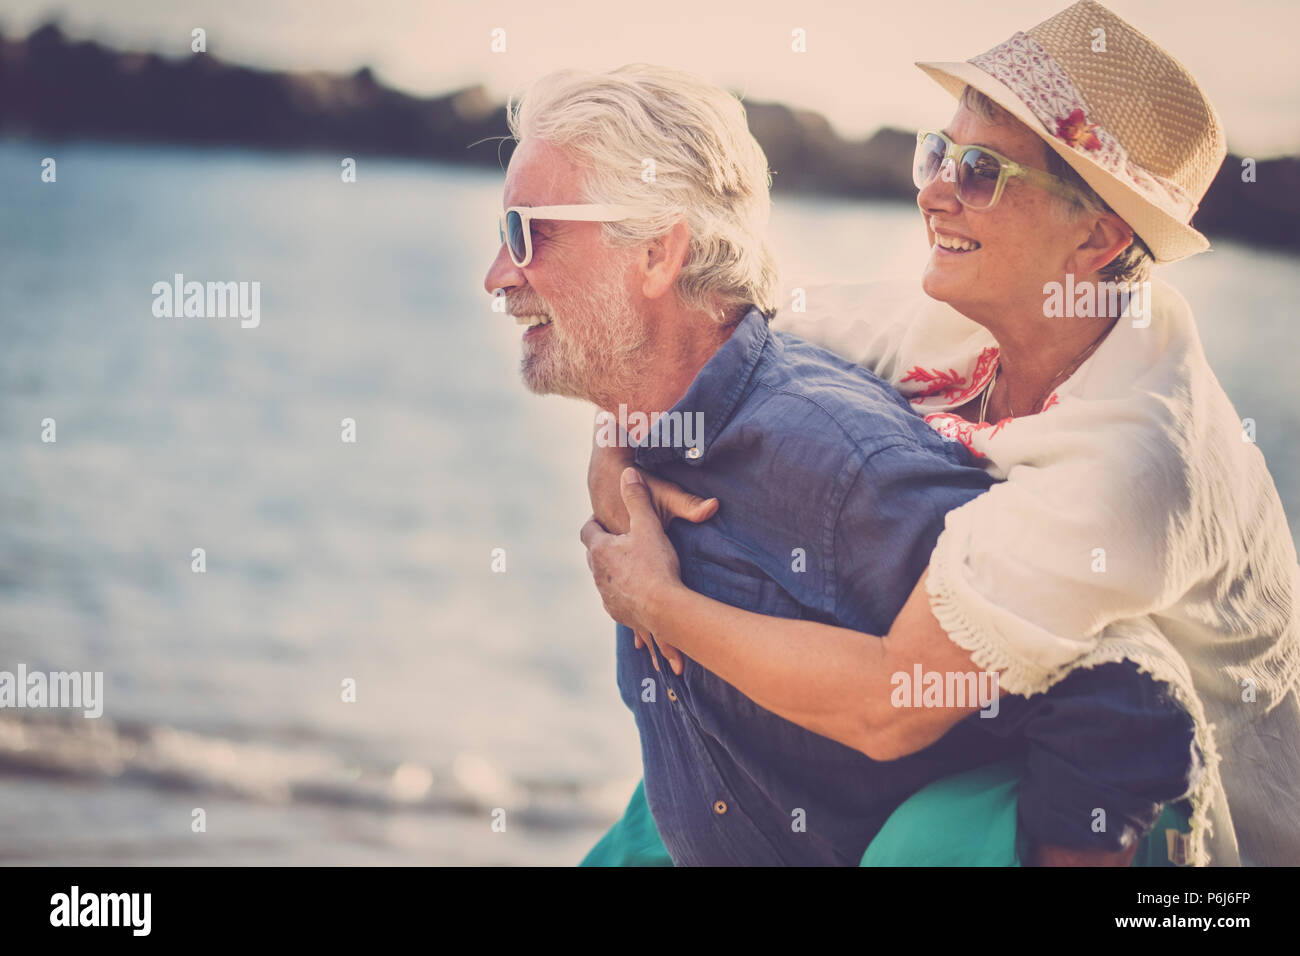 happy senior couple have fun and enjoy outdoor leisure activity at the beach. the man carry the woman on his back to enjoy together a retired lifestyl - Stock Image